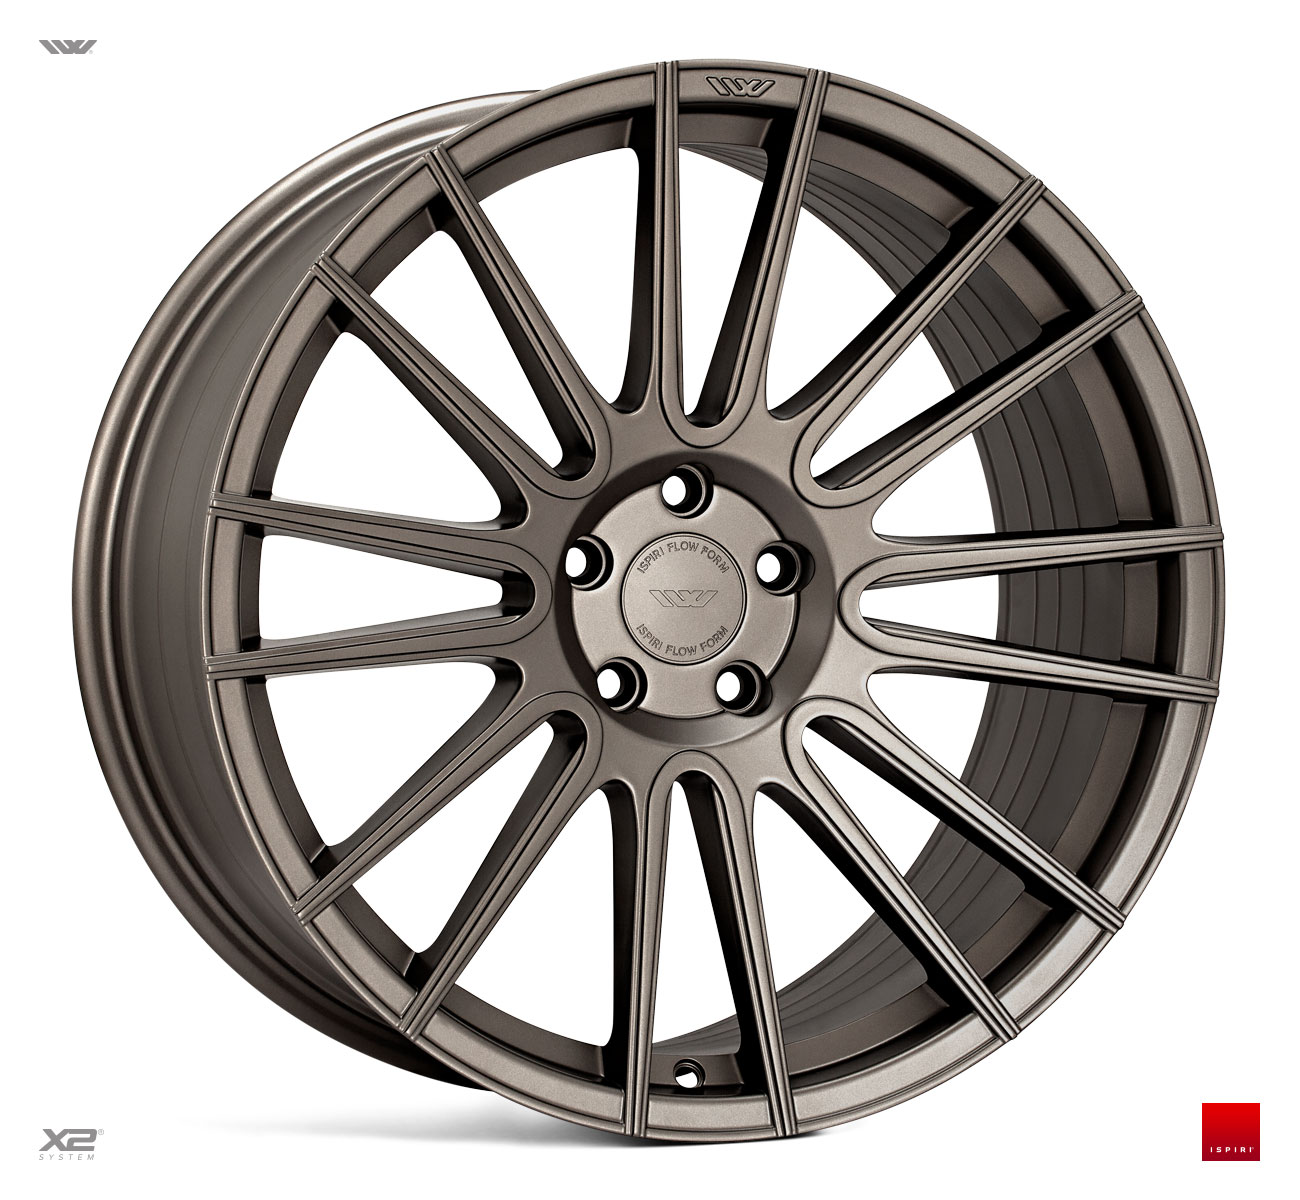 "NEW 20"" ISPIRI FFR8 8-TWIN CURVED SPOKE ALLOY WHEELS IN MATT CARBON BRONZE, WIDER 10"" REARS"